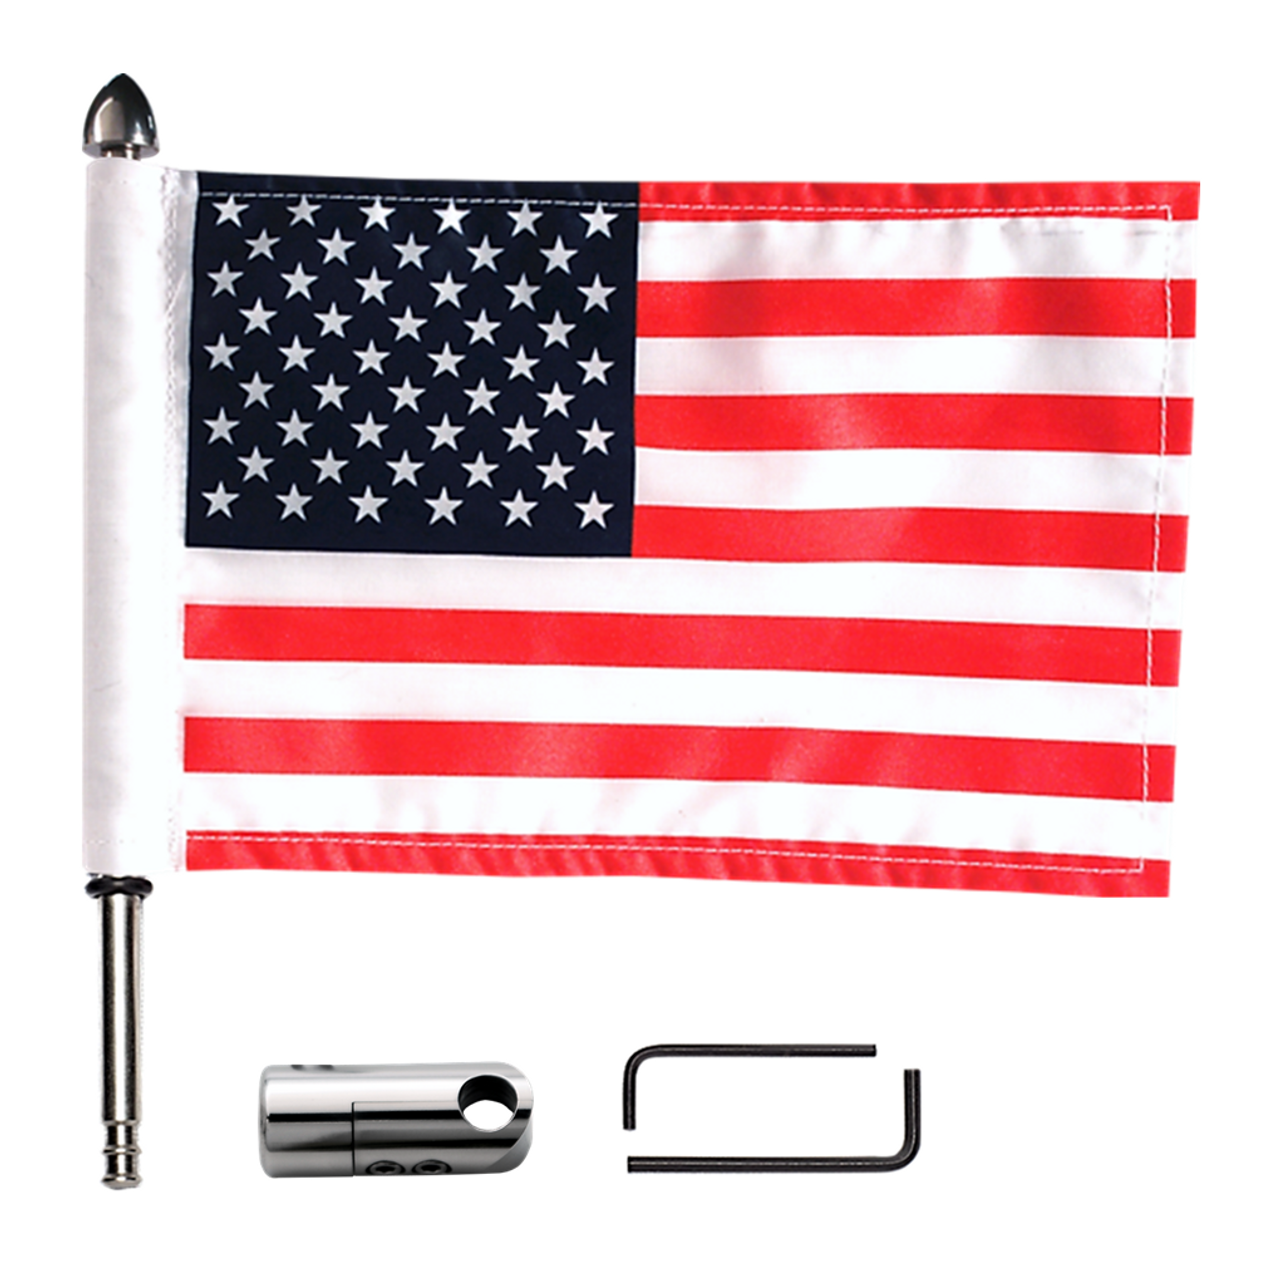 RFM-RDHB12 with 6x9 USA highway flag (component view)